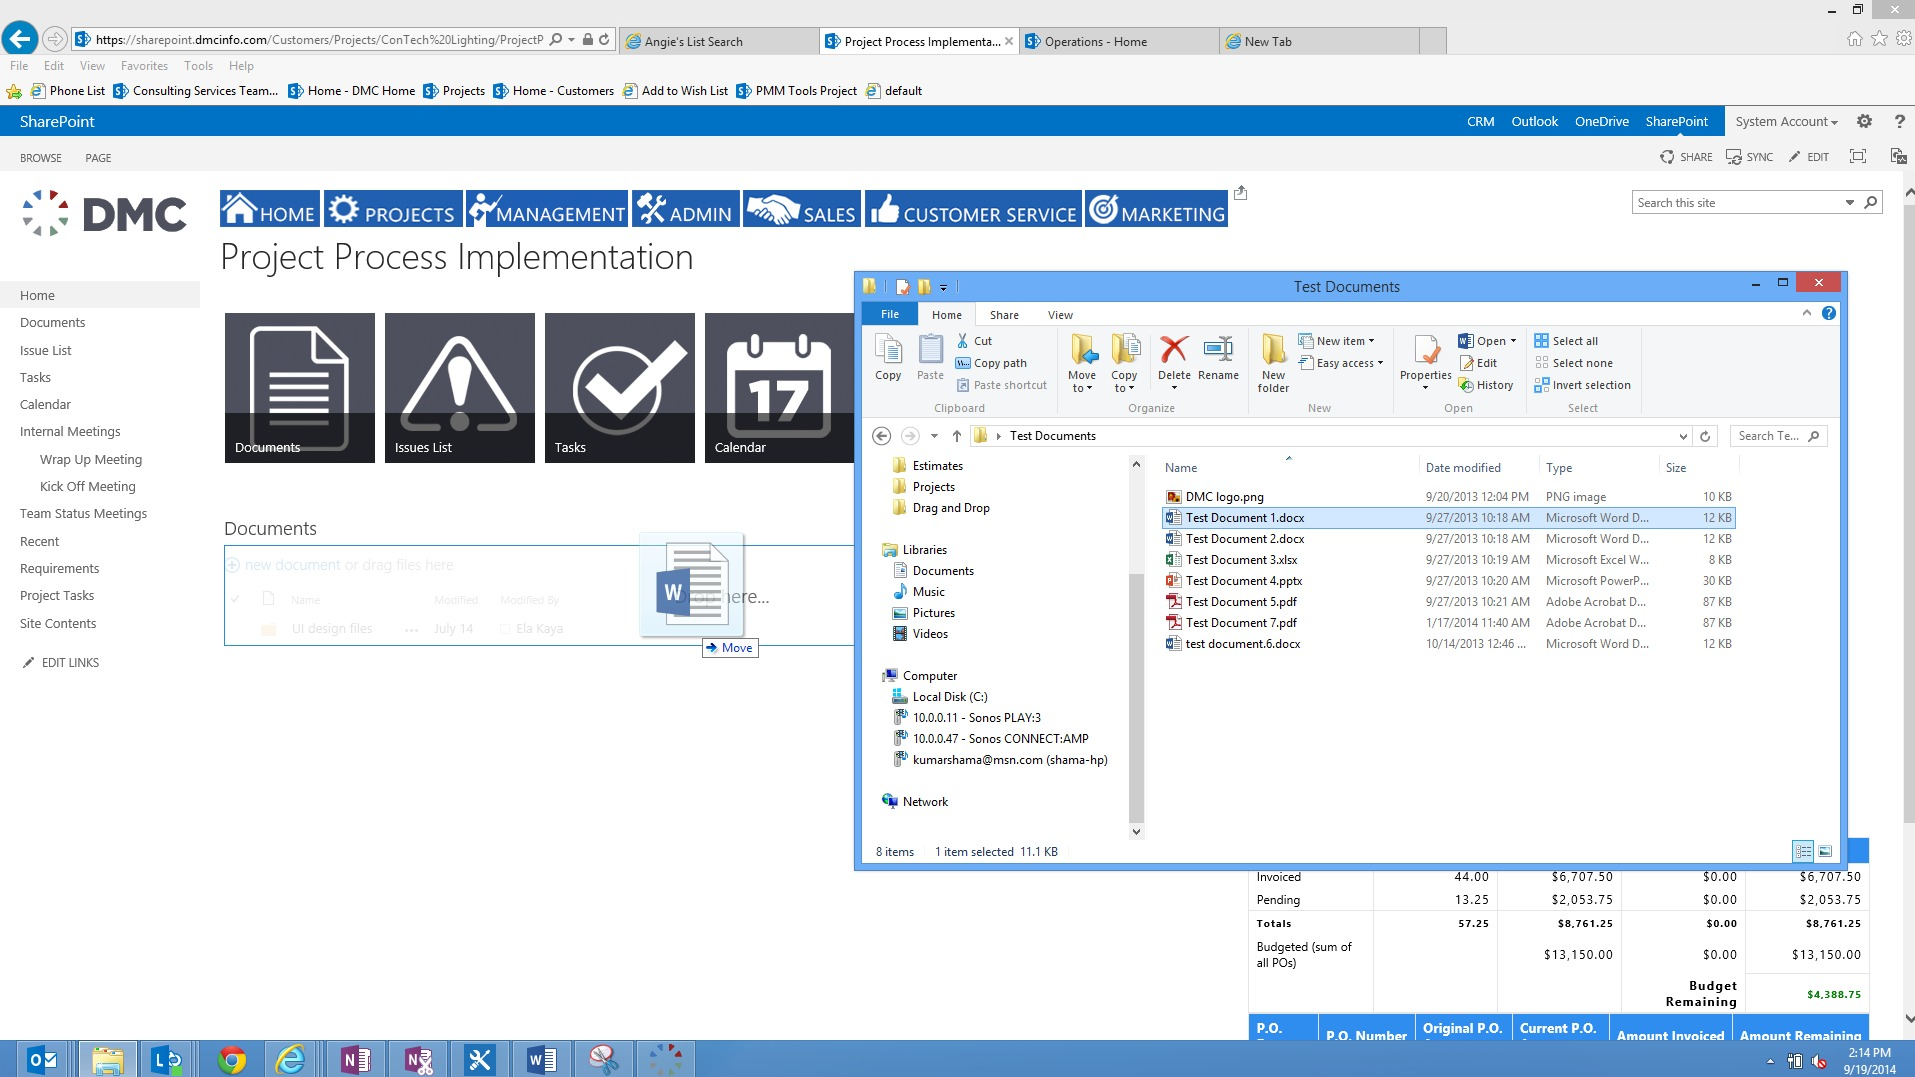 10 reasons why business users should upgrade to sharepoint 2013